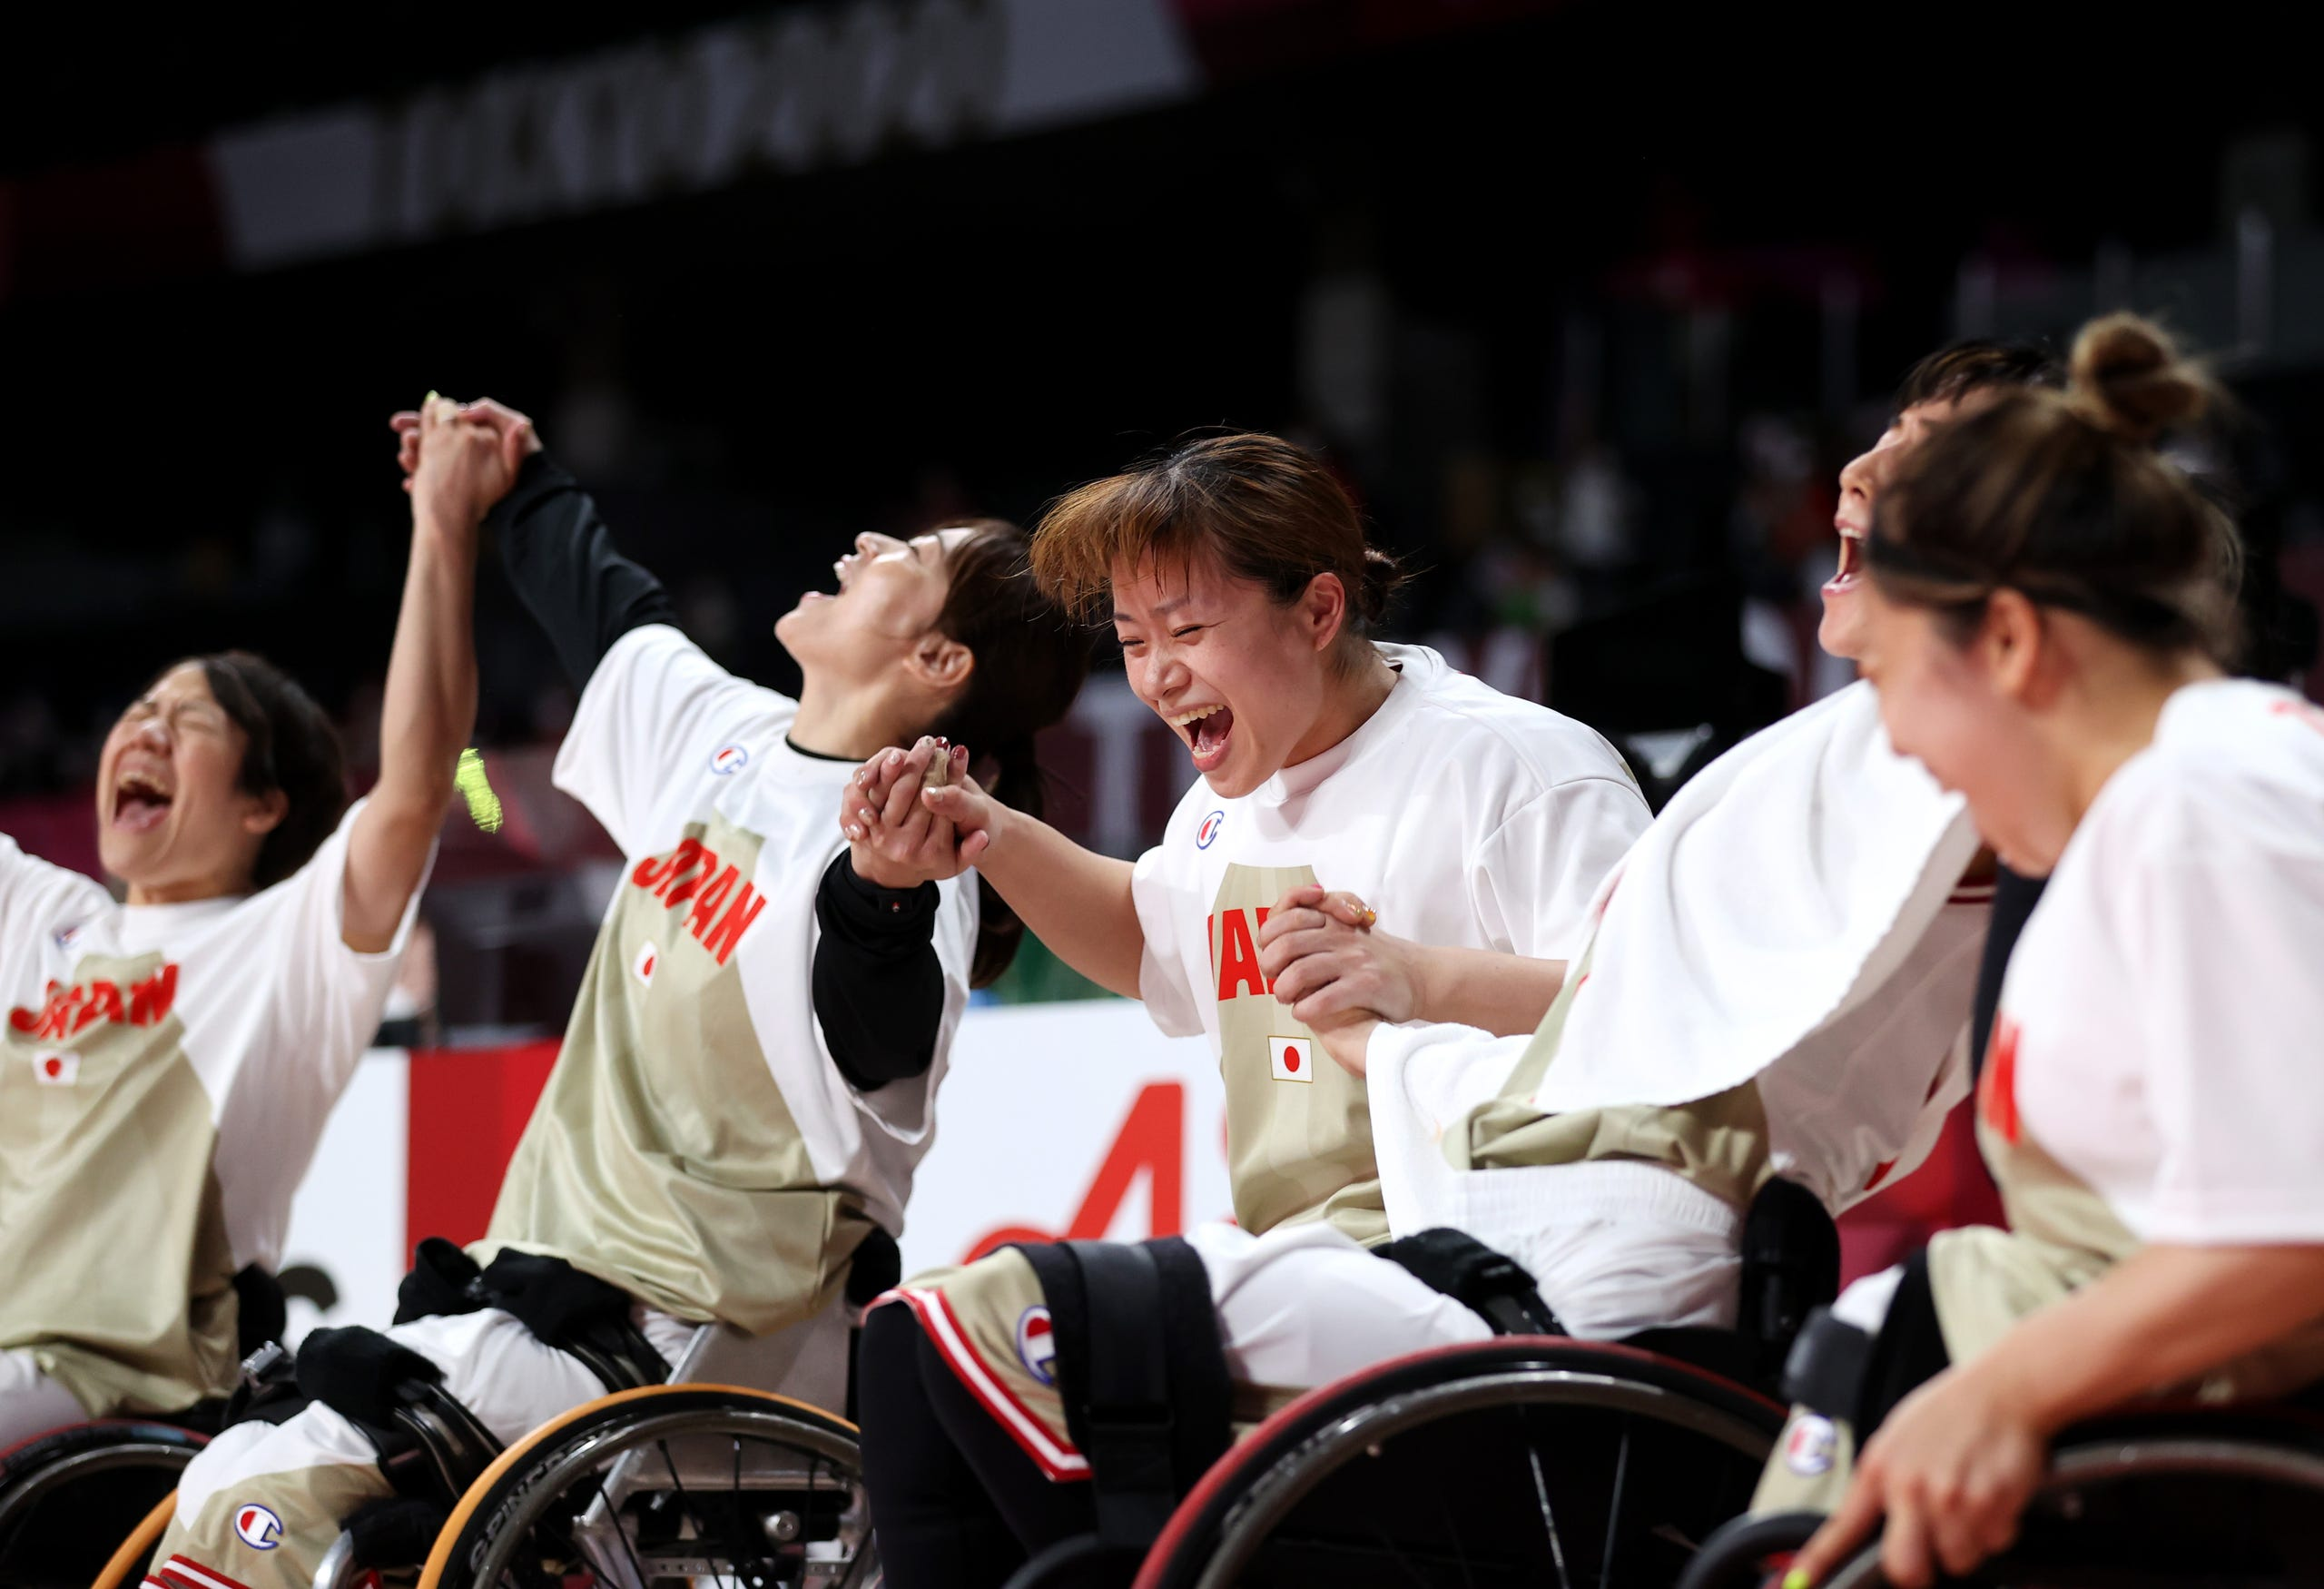 August 26, 2021: Team Japan celebrate victory during the Wheelchair Basketball Women's preliminary round group A match between team Japan and team Great Britain at Musashino Forest Sports Plaza on day 2 of the Tokyo 2020 Paralympic Games  in Chofu, Tokyo, Japan.